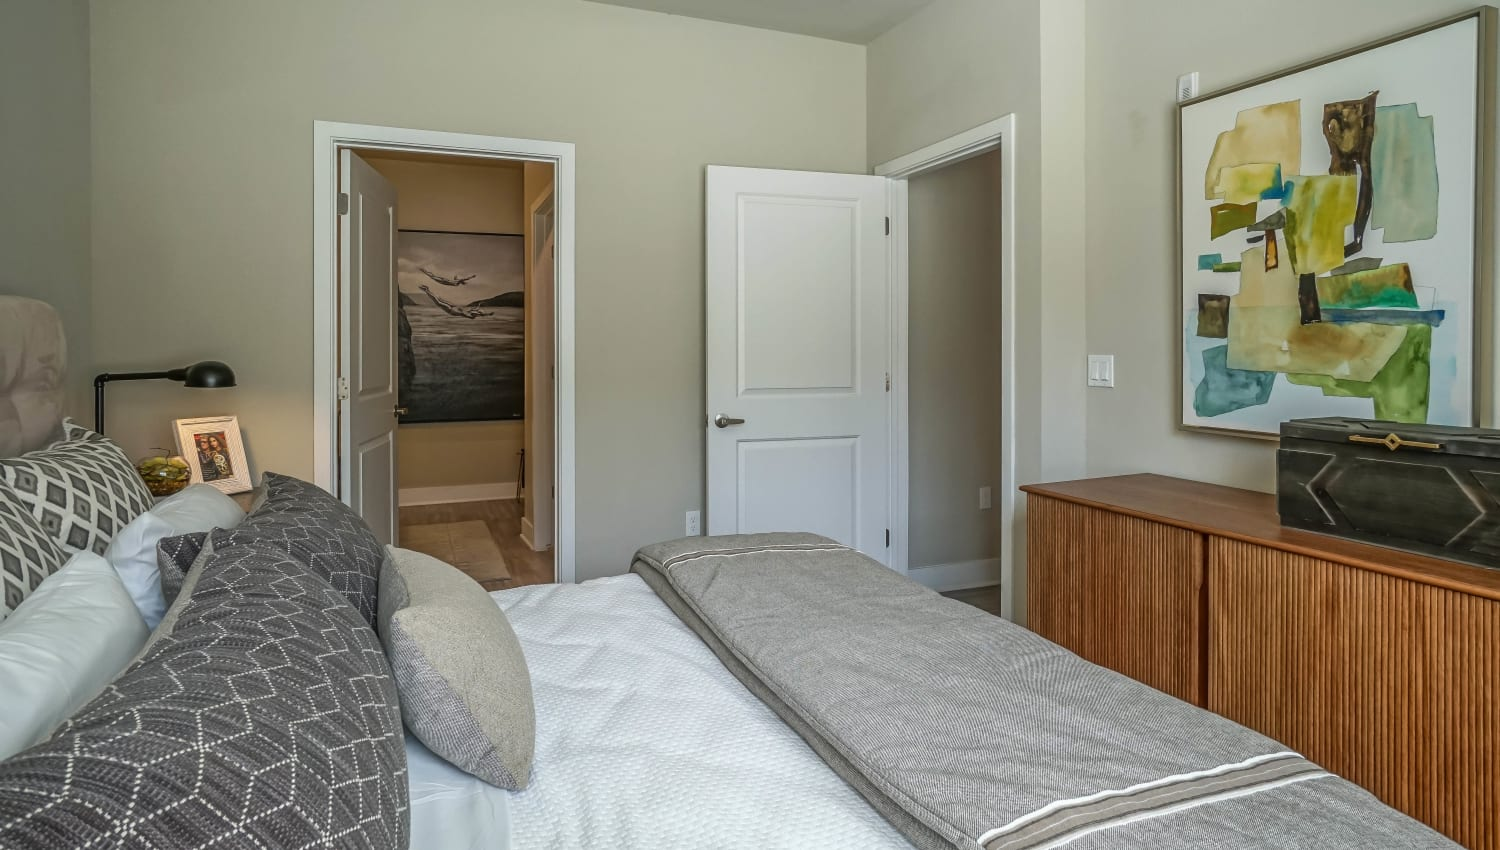 Model home's bedroom with an en suite bathroom at Olympus Northpoint in Albuquerque, New Mexico